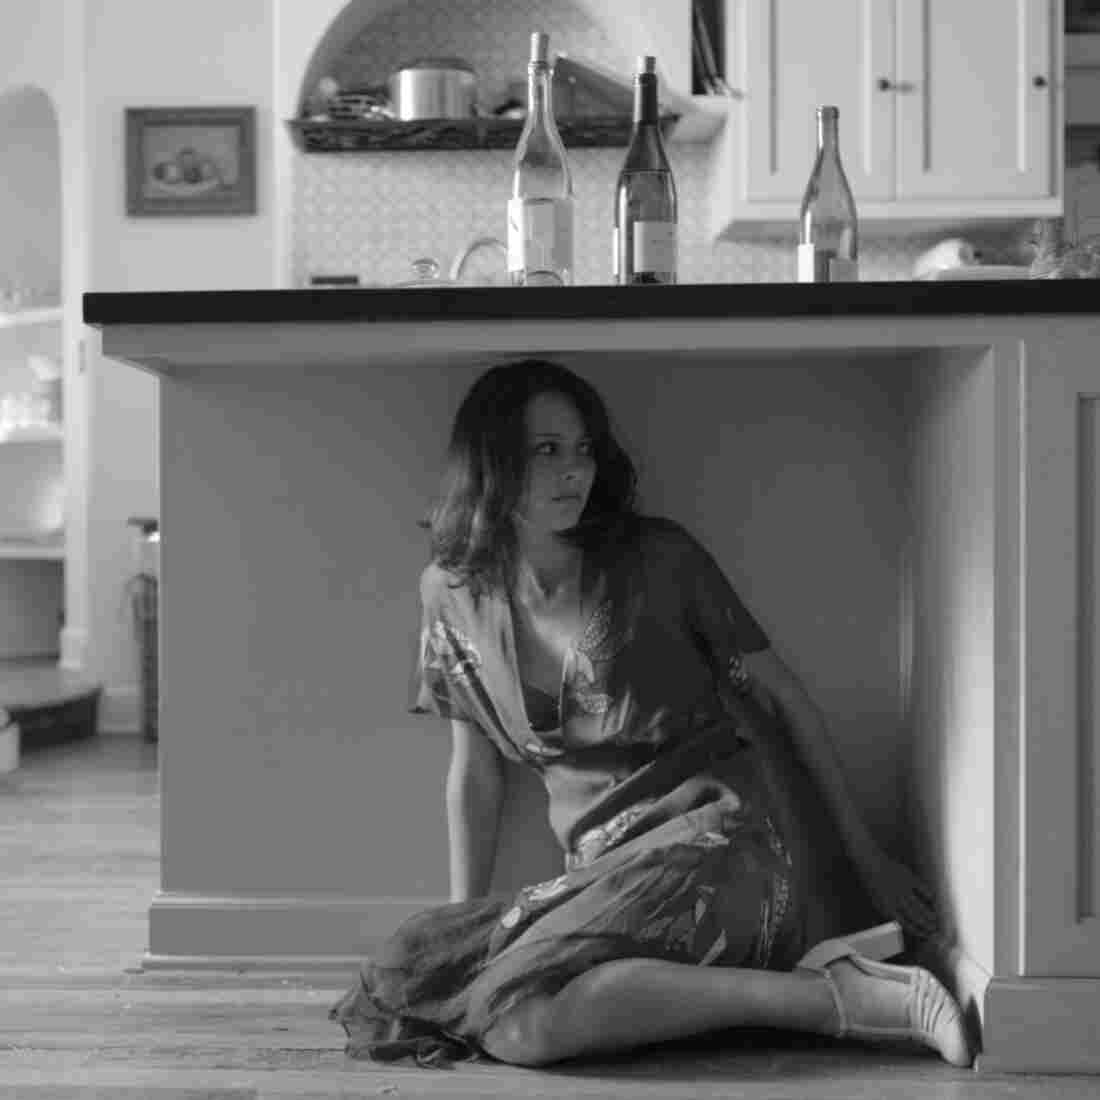 Amy Acker as Beatrice eavesdrops in a scene from Joss Whedon's new film version of Much Ado About Nothing.